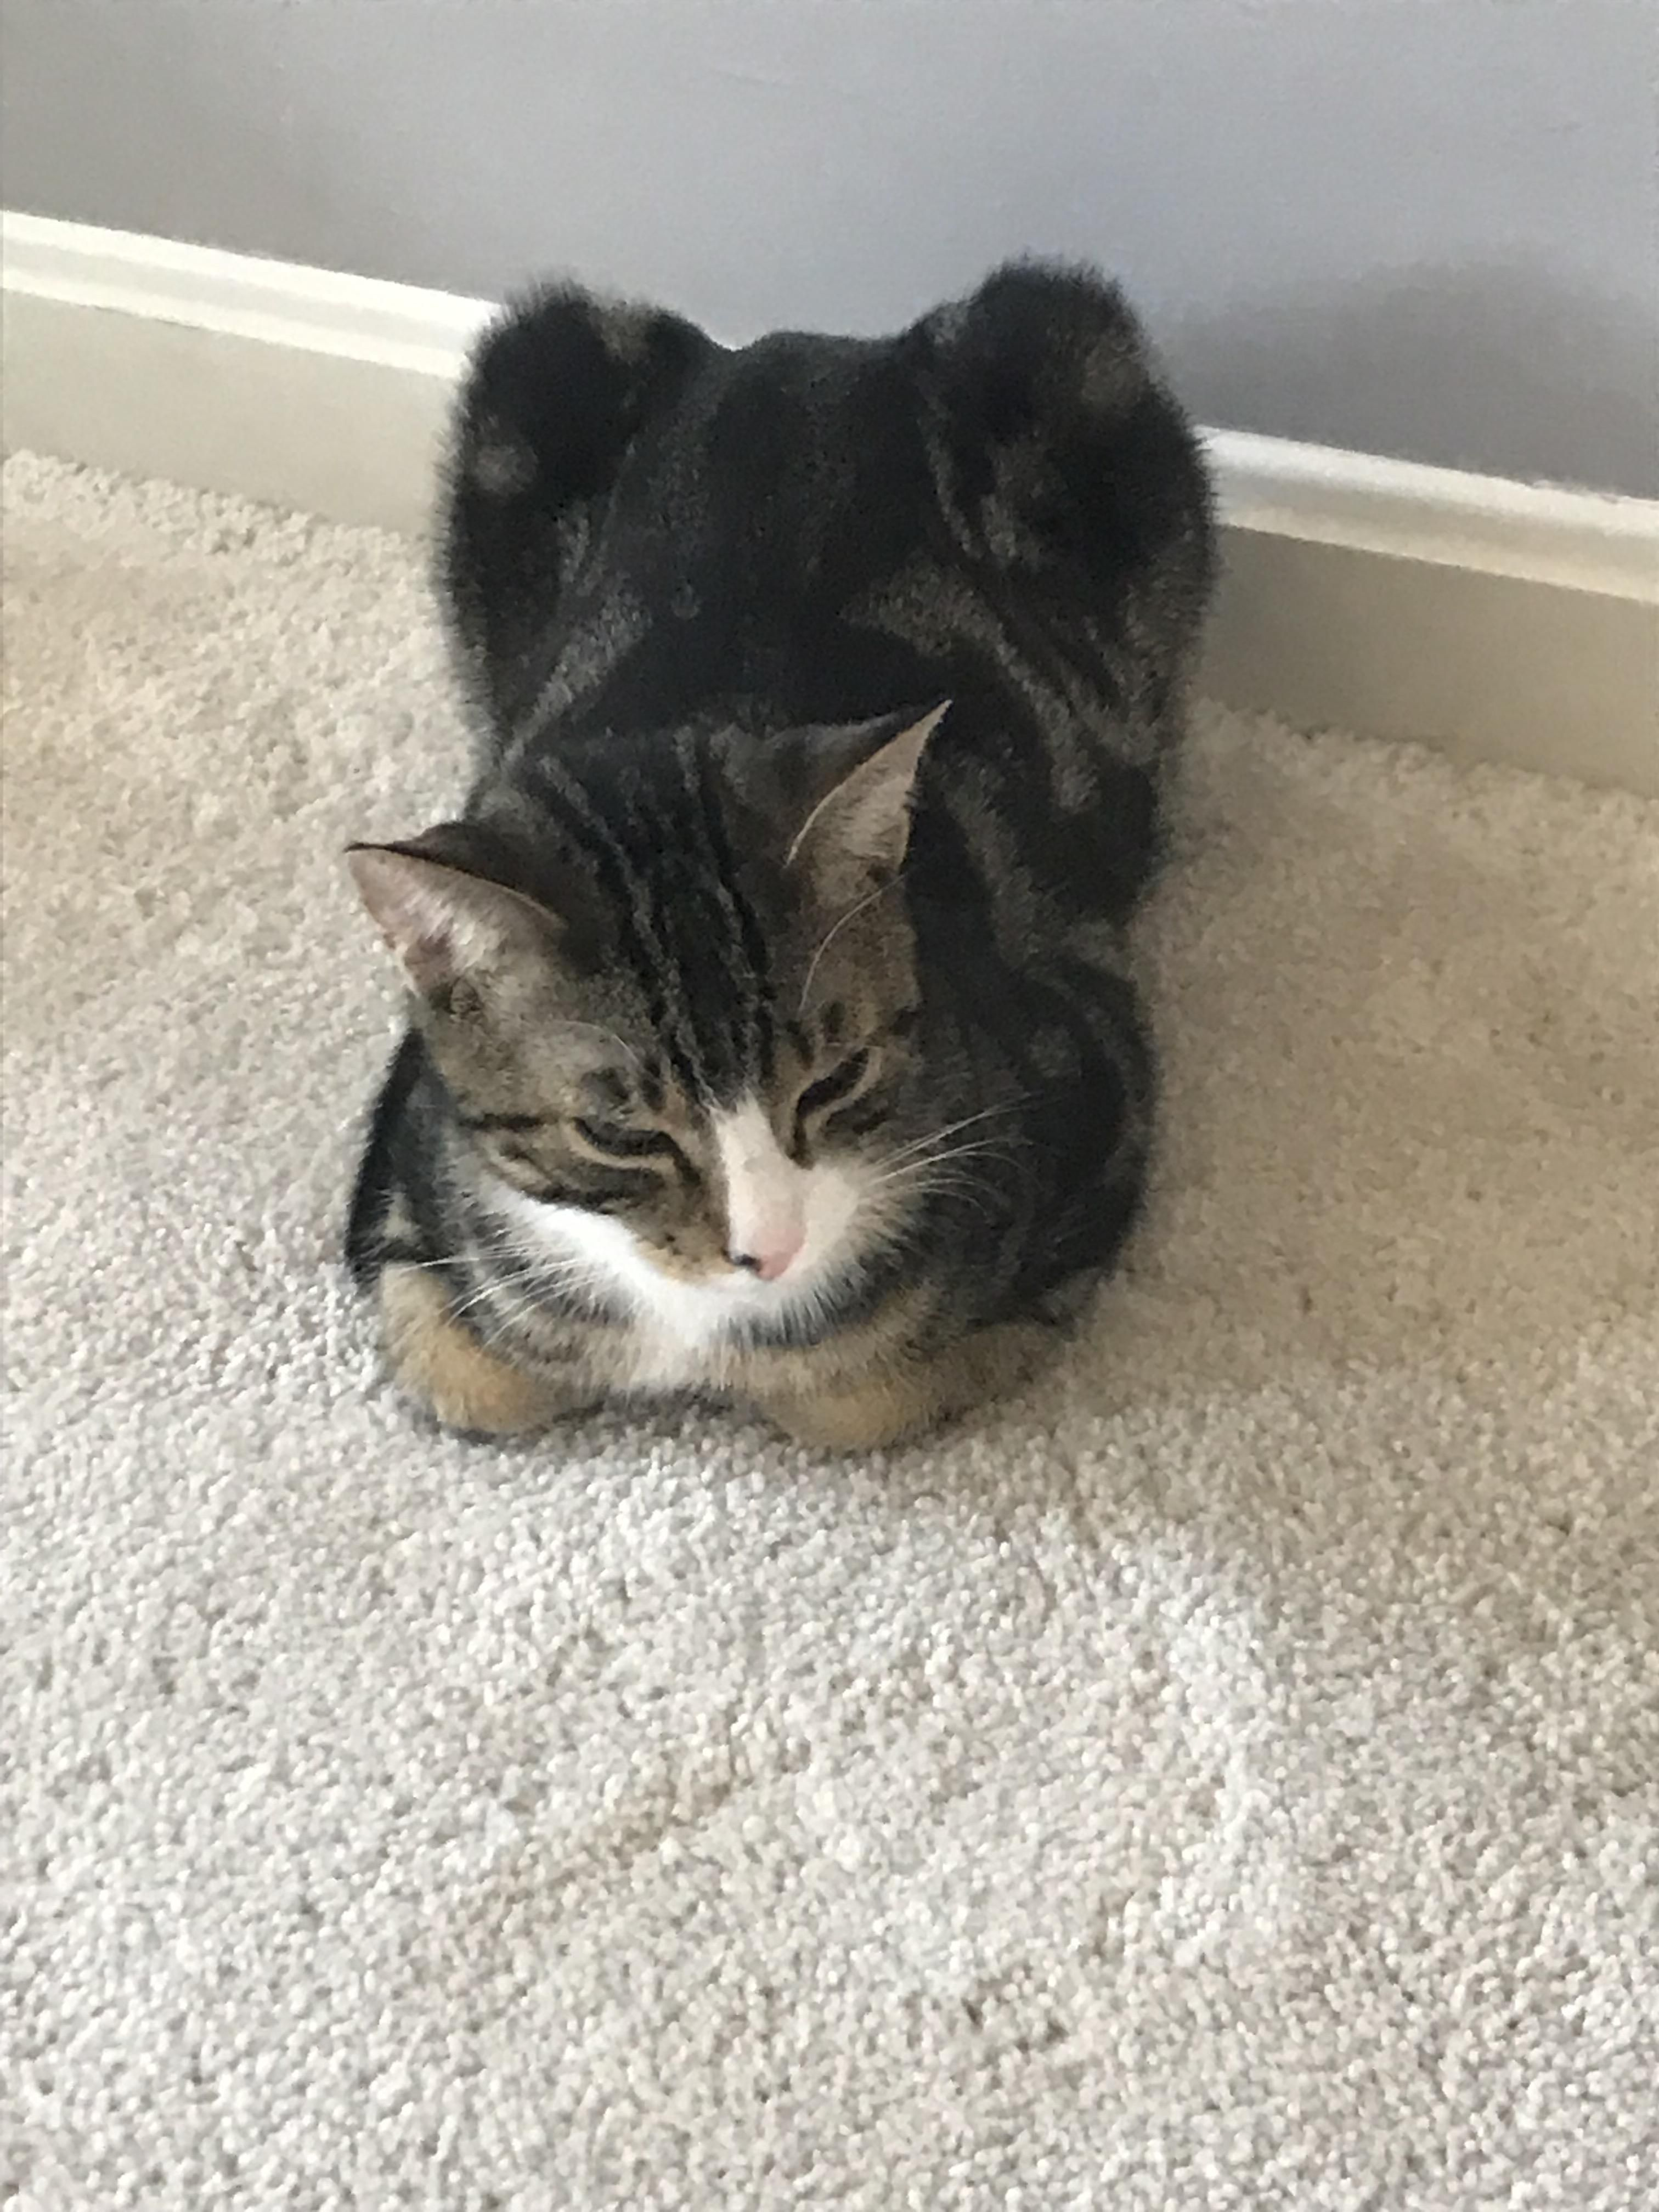 The Black Tiger Cat Loaf Are Best Left To Rise In Their Own Time Cats Black Tigers Kittens Cutest